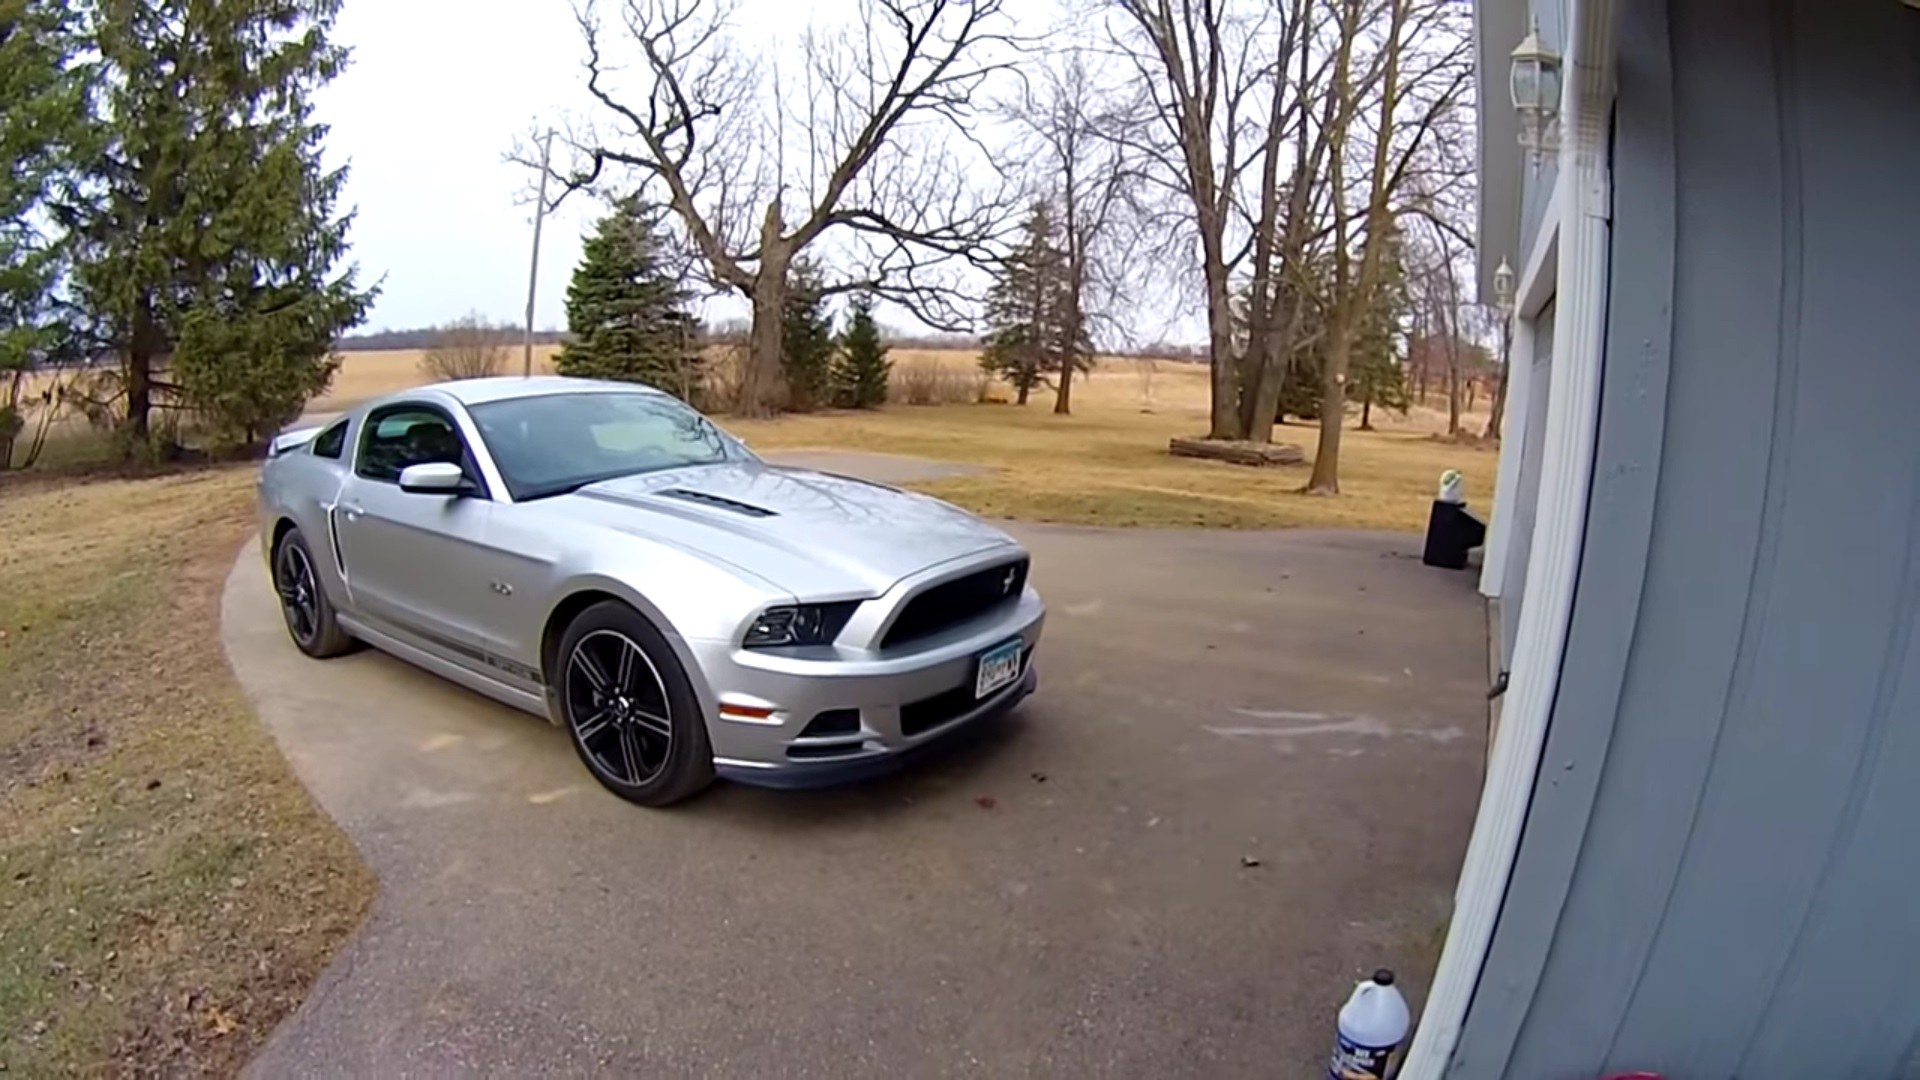 Video: 2014 Ford Mustang GT California Special POV Test Drive